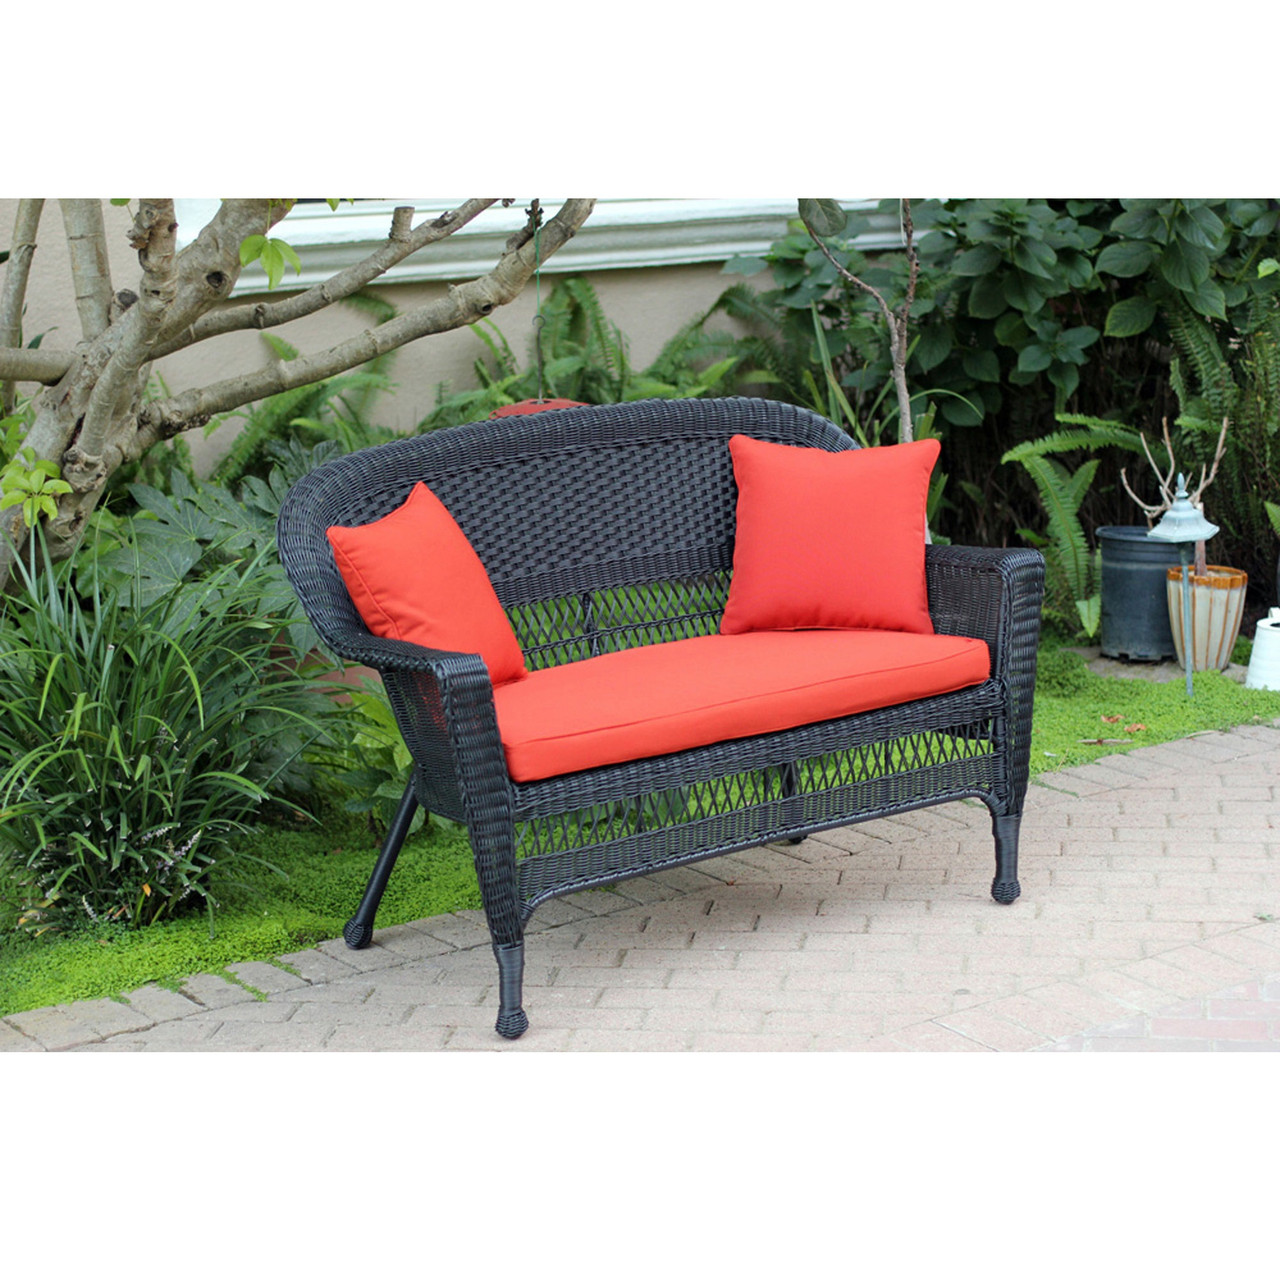 Marvelous 51 Black Resin Wicker Outdoor Patio Garden Love Seat Red Orange Cushion Pillows 31556411 Pdpeps Interior Chair Design Pdpepsorg